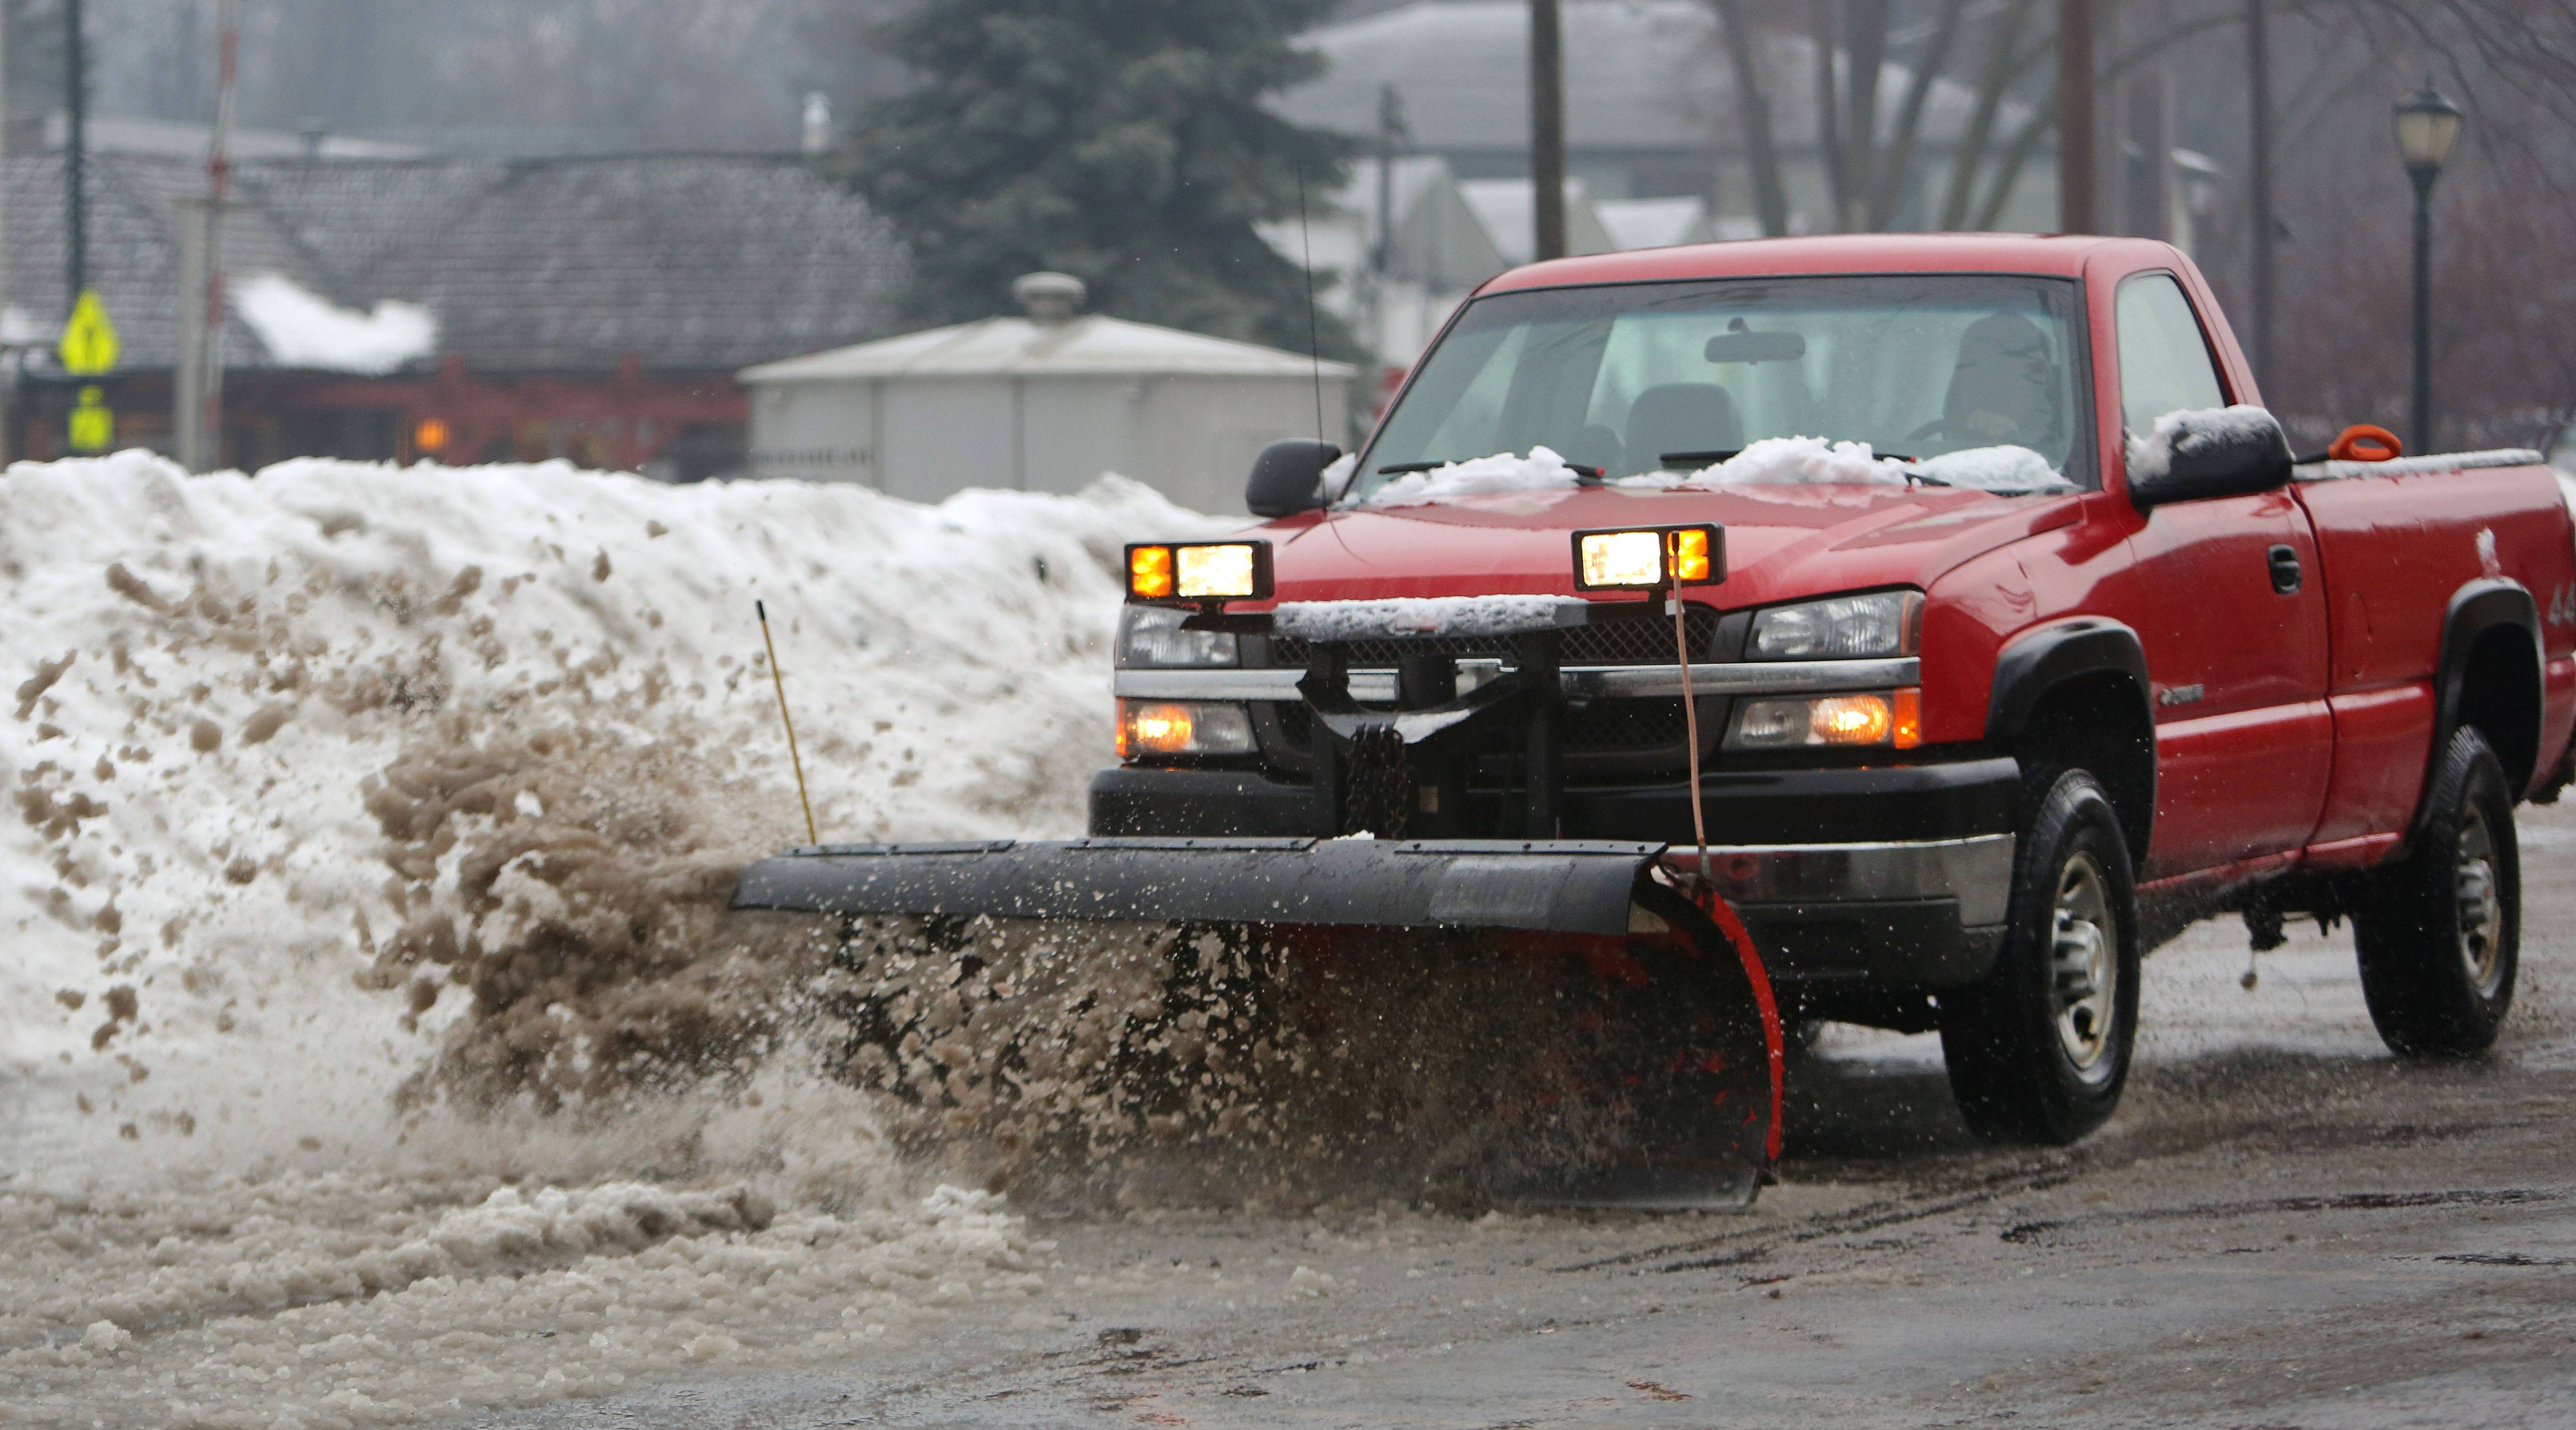 A snowplow clears slush out of a parking lot in Libertyville after a winter storm covered the area with freezing rain Thursday morning.